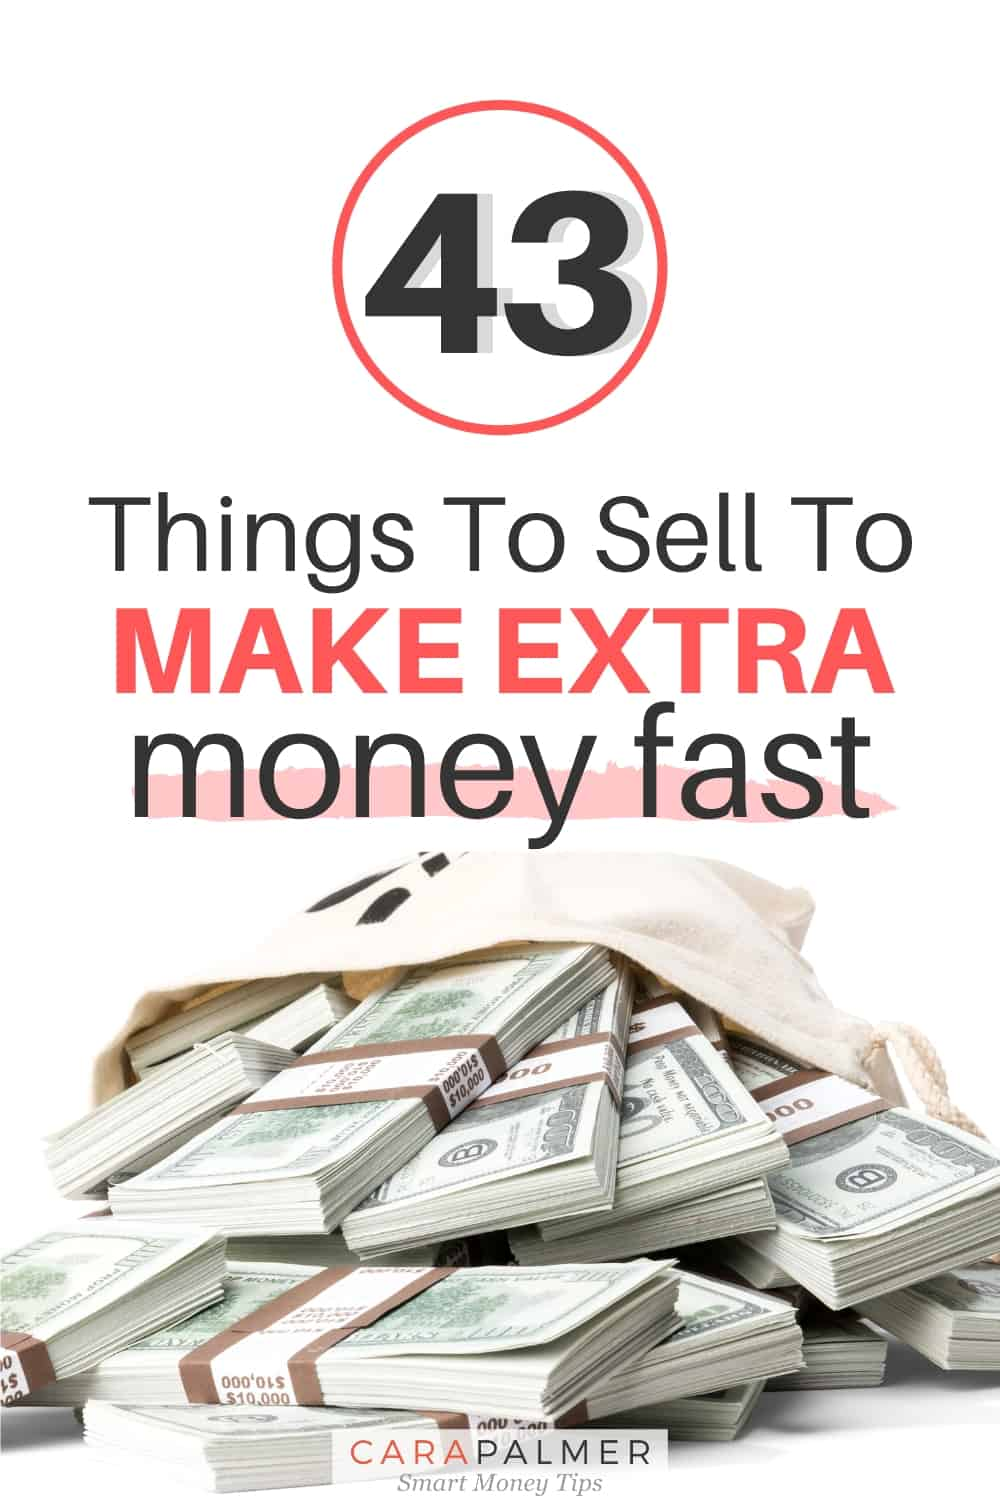 Over 40 things you can sell to make extra money